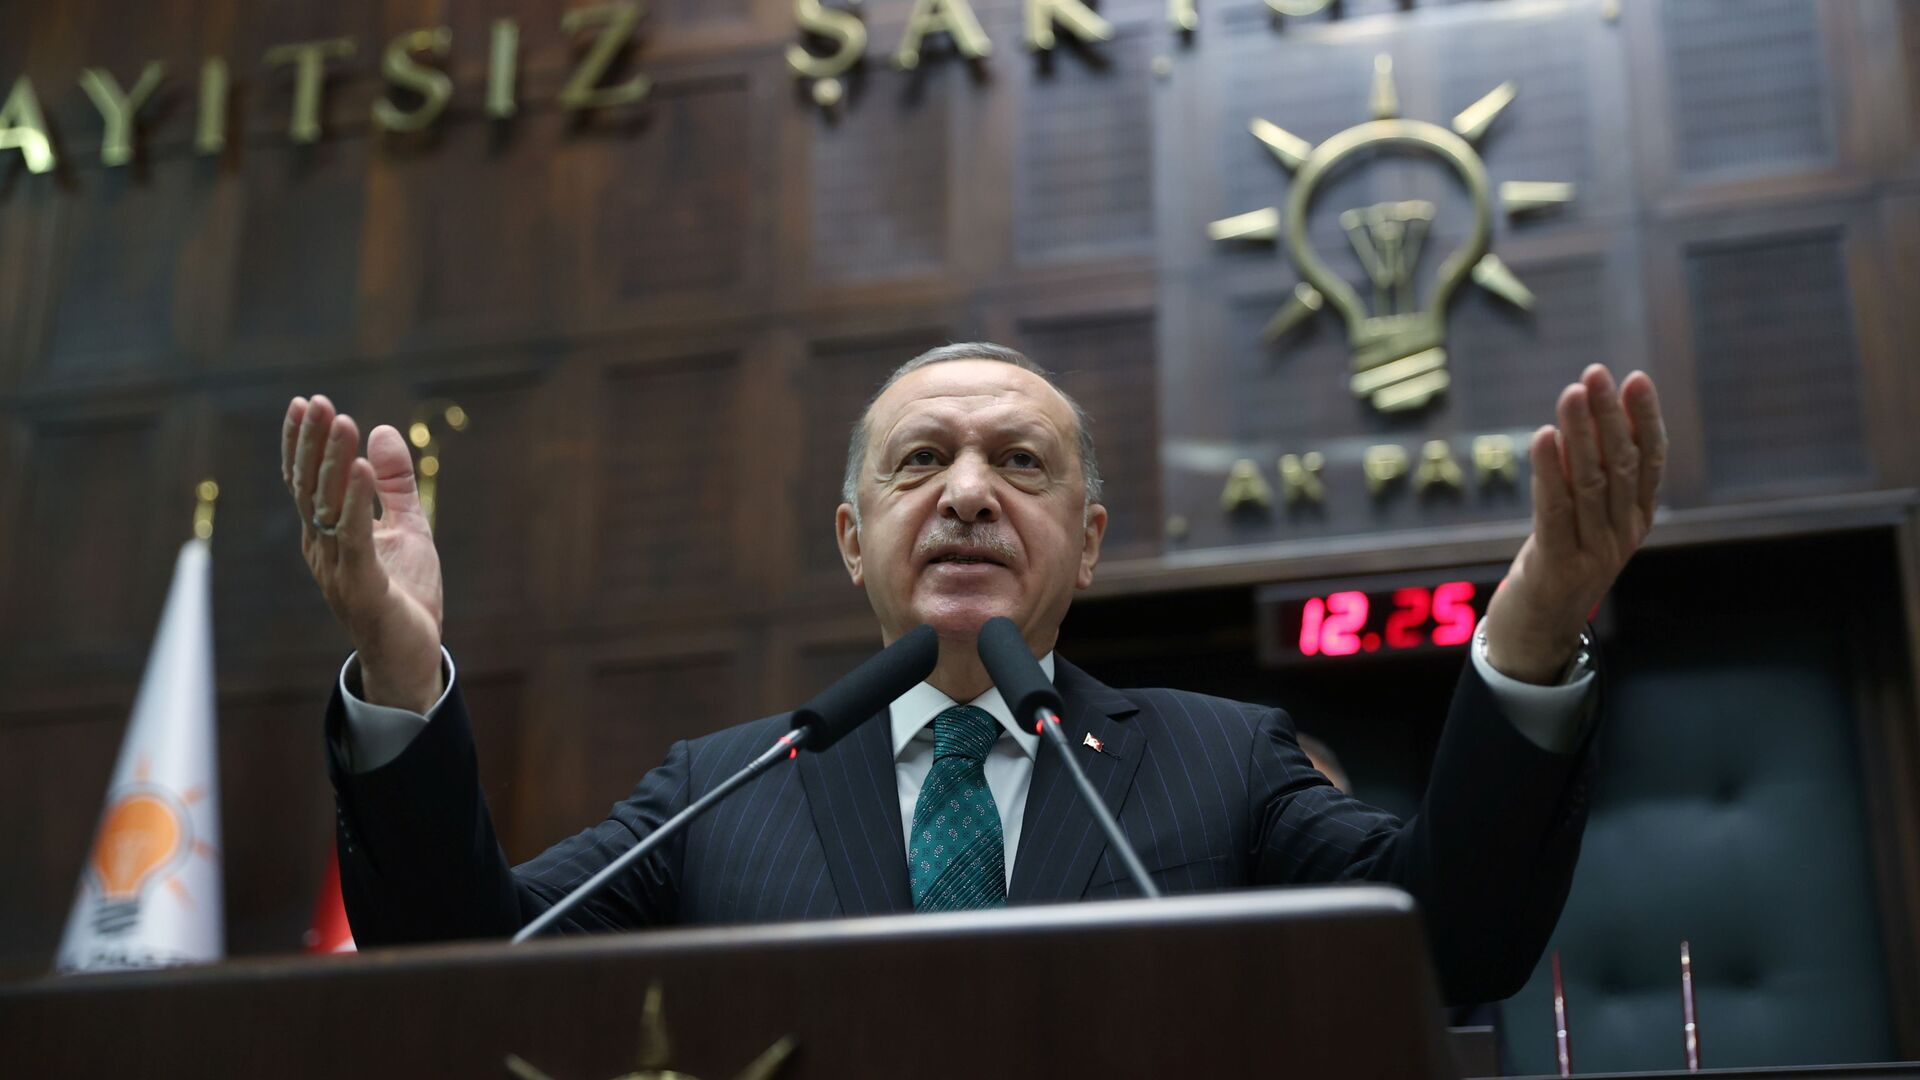 Turkish President Tayyip Erdogan addresses members of parliament from his ruling AK Party (AKP) during a meeting at the Turkish parliament in Ankara, Turkey, February 10, 2021 - Sputnik Italia, 1920, 14.04.2021